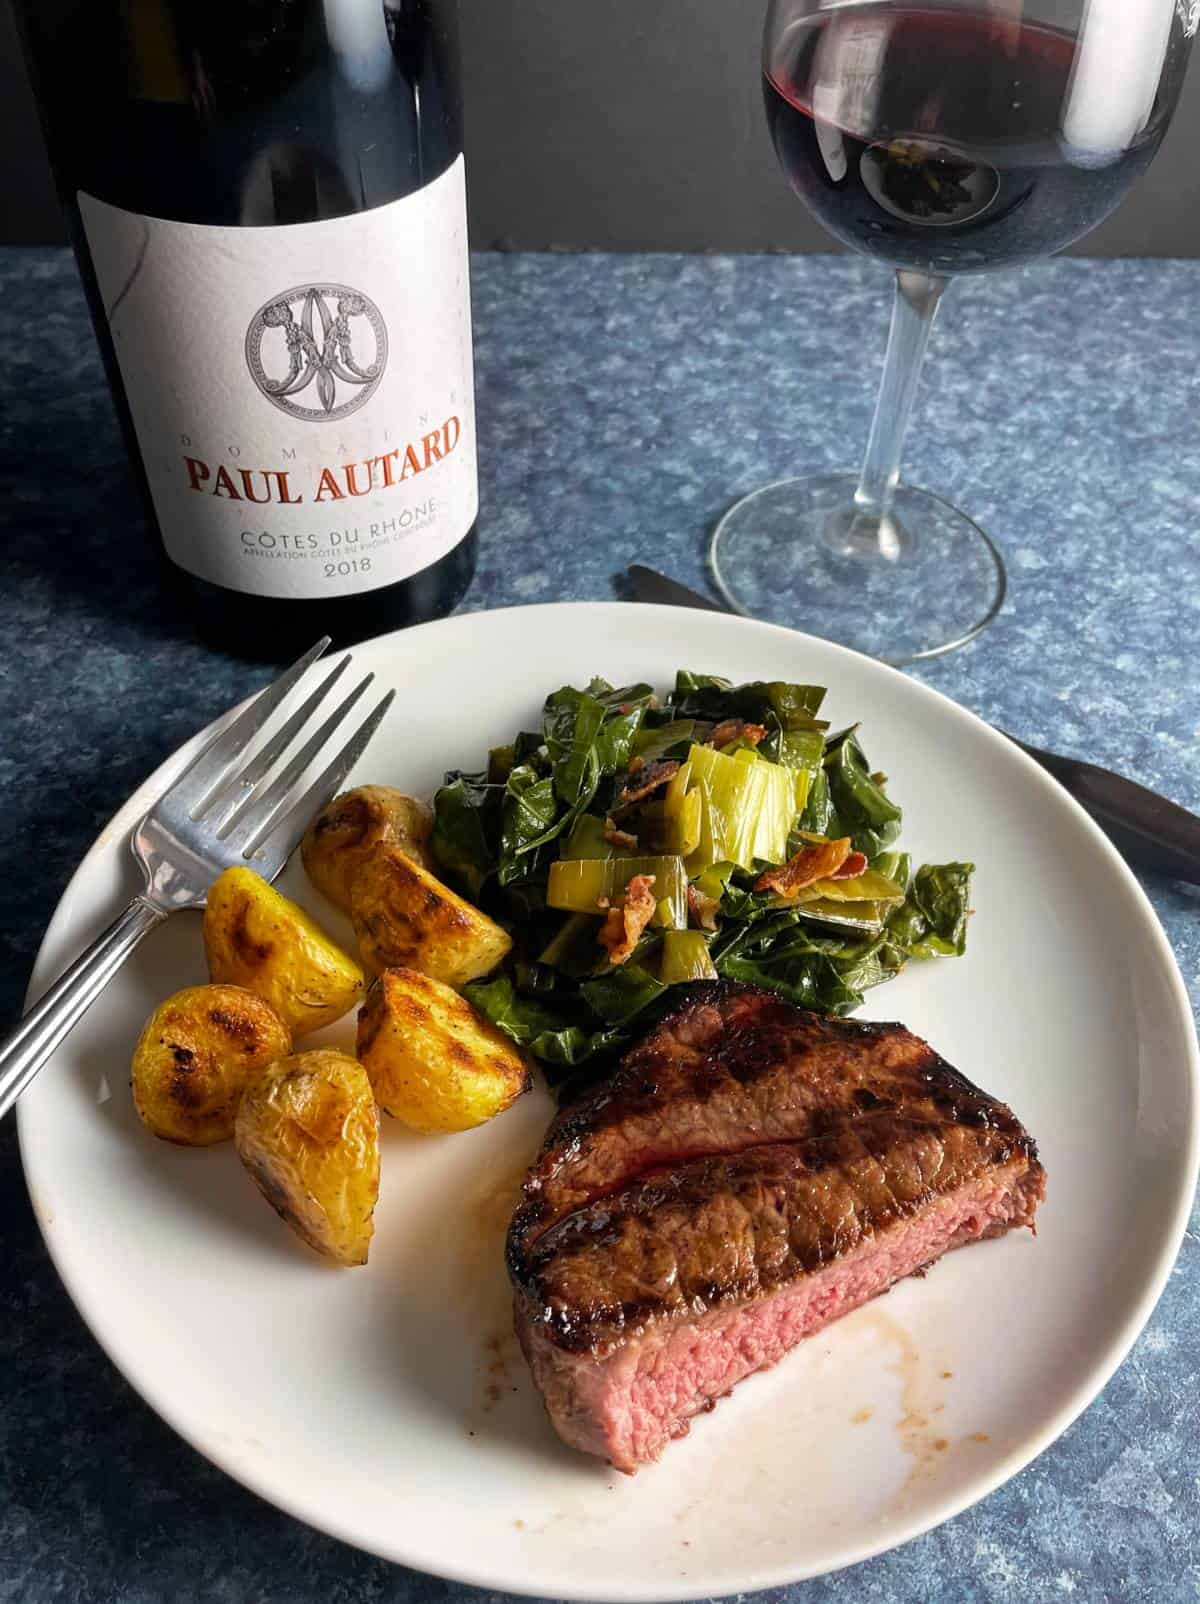 plate with grilled steak tips, collard greens and small potatoes. served with a red Cotes du Rhone wine.